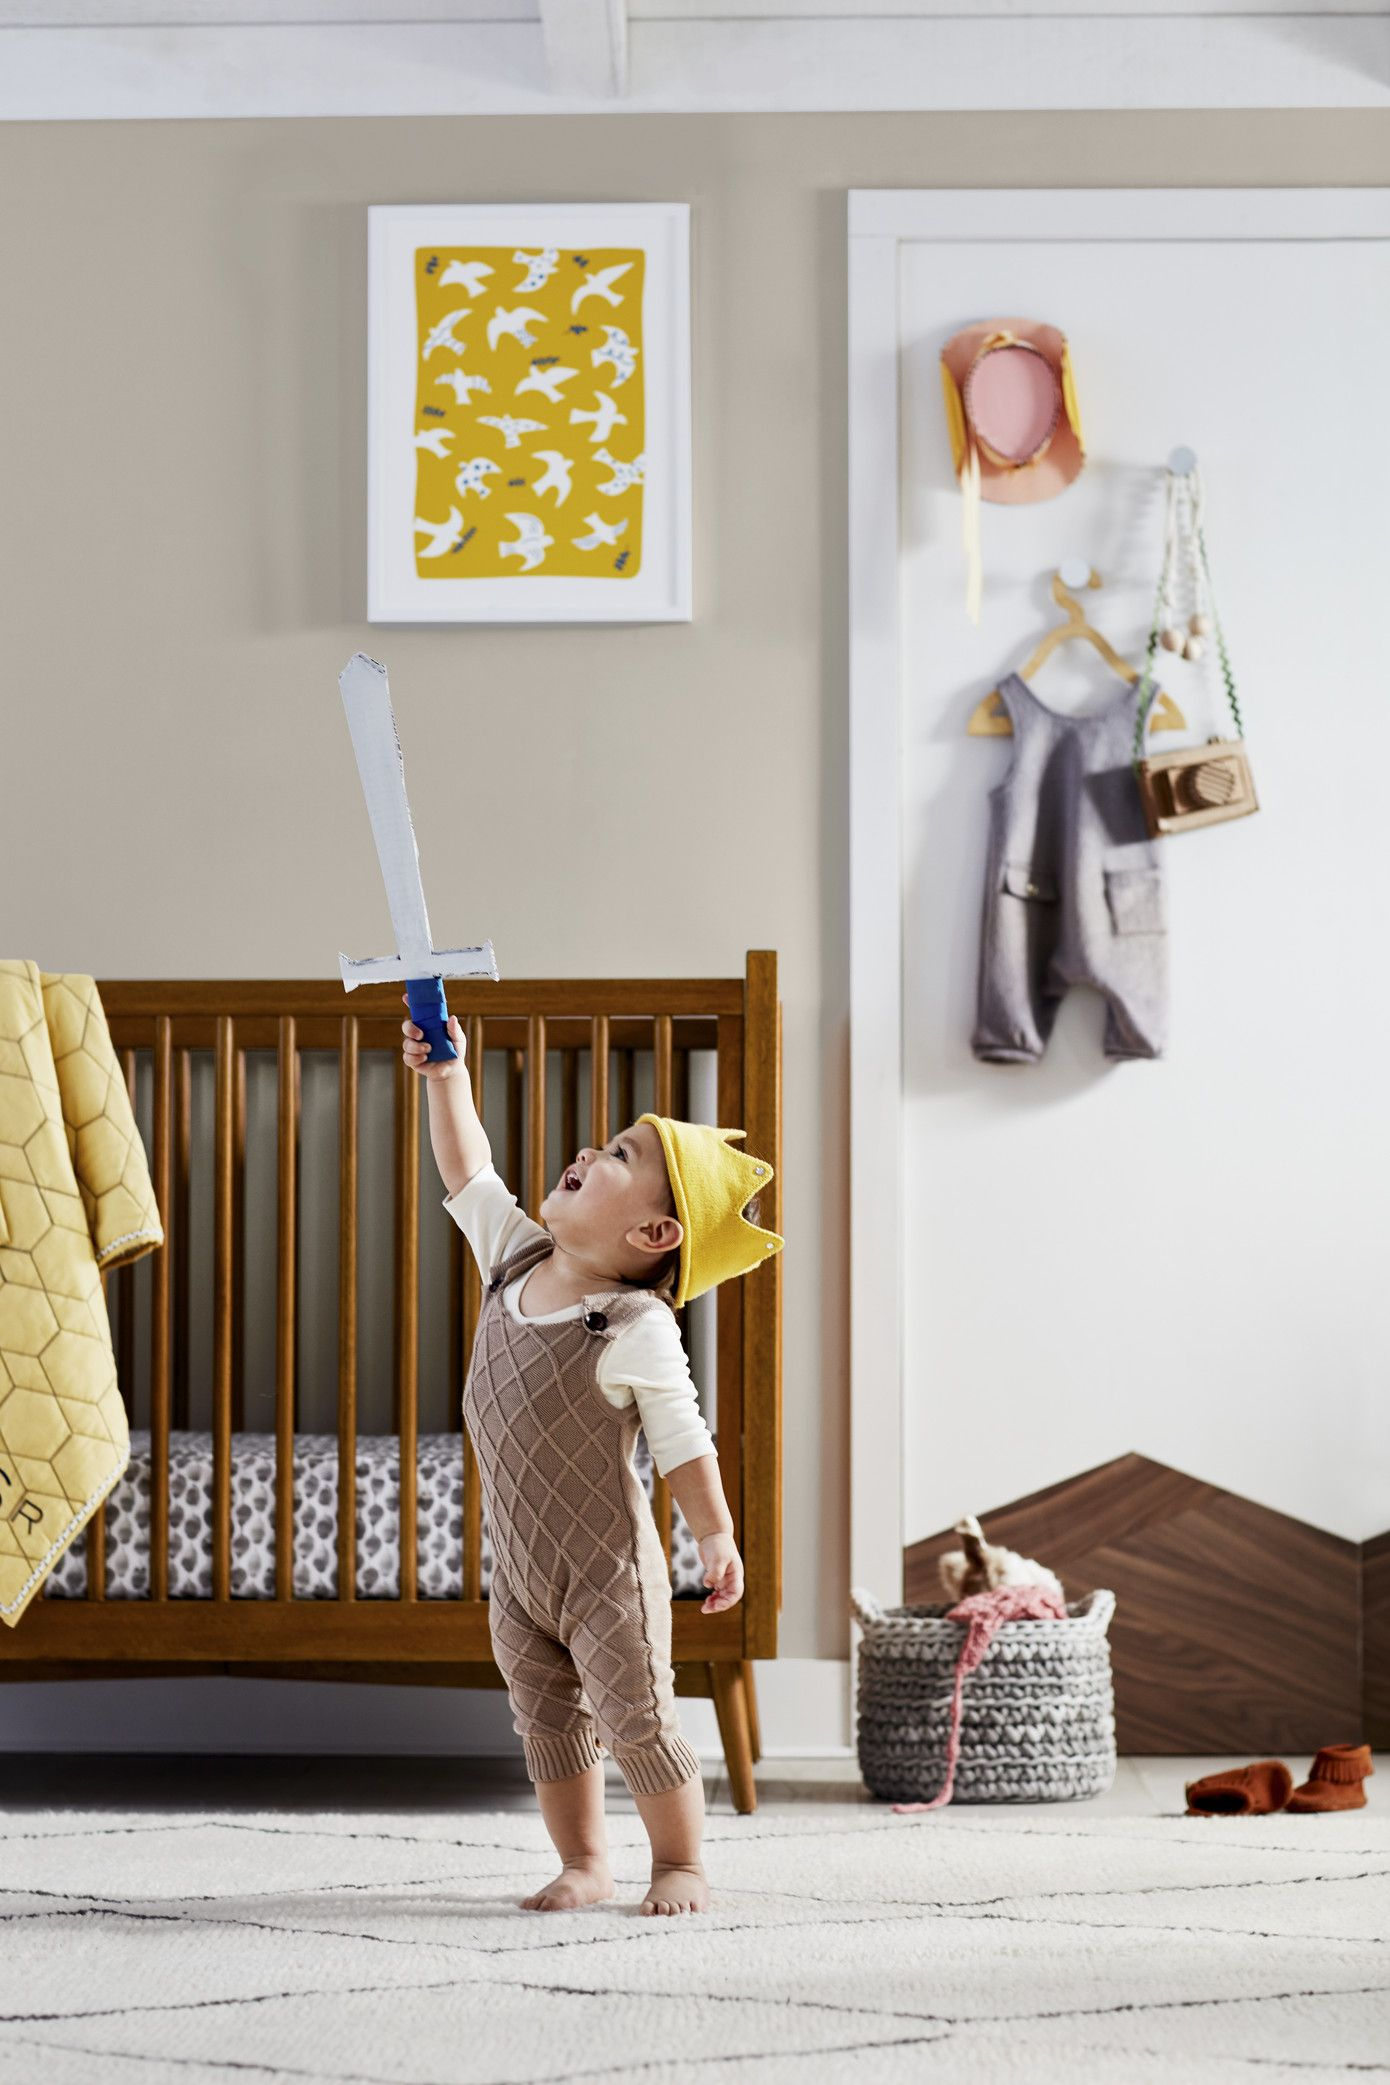 West Elm Pottery Barn Kids Modern Baby And Furniture Home Decor Launch Midcentury Cribs